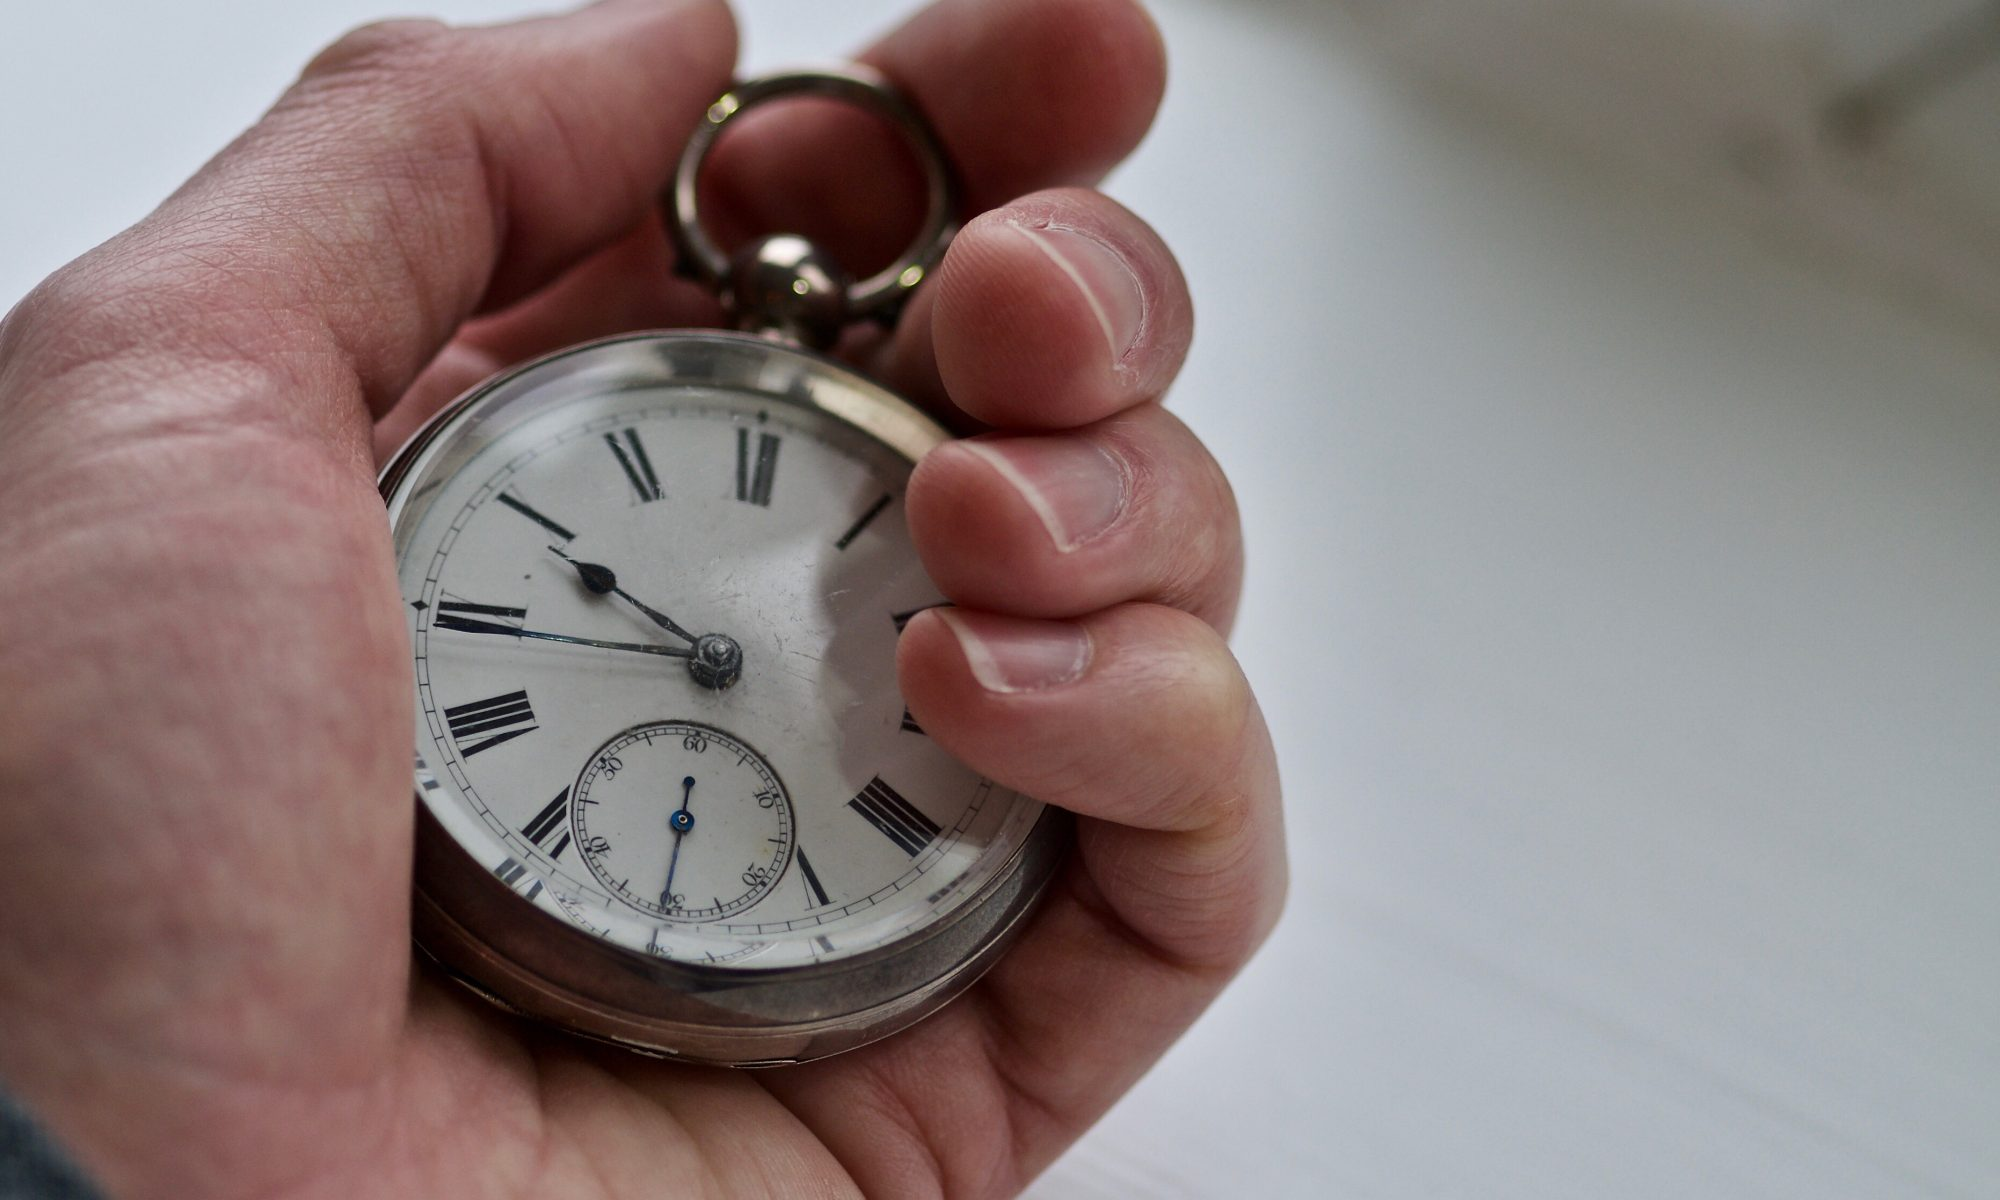 Photo of Neil Cox hands holding a genuine antique Waltham fob watch whilst working at Neil Cox Hypnotherapy in Bude Cornwall